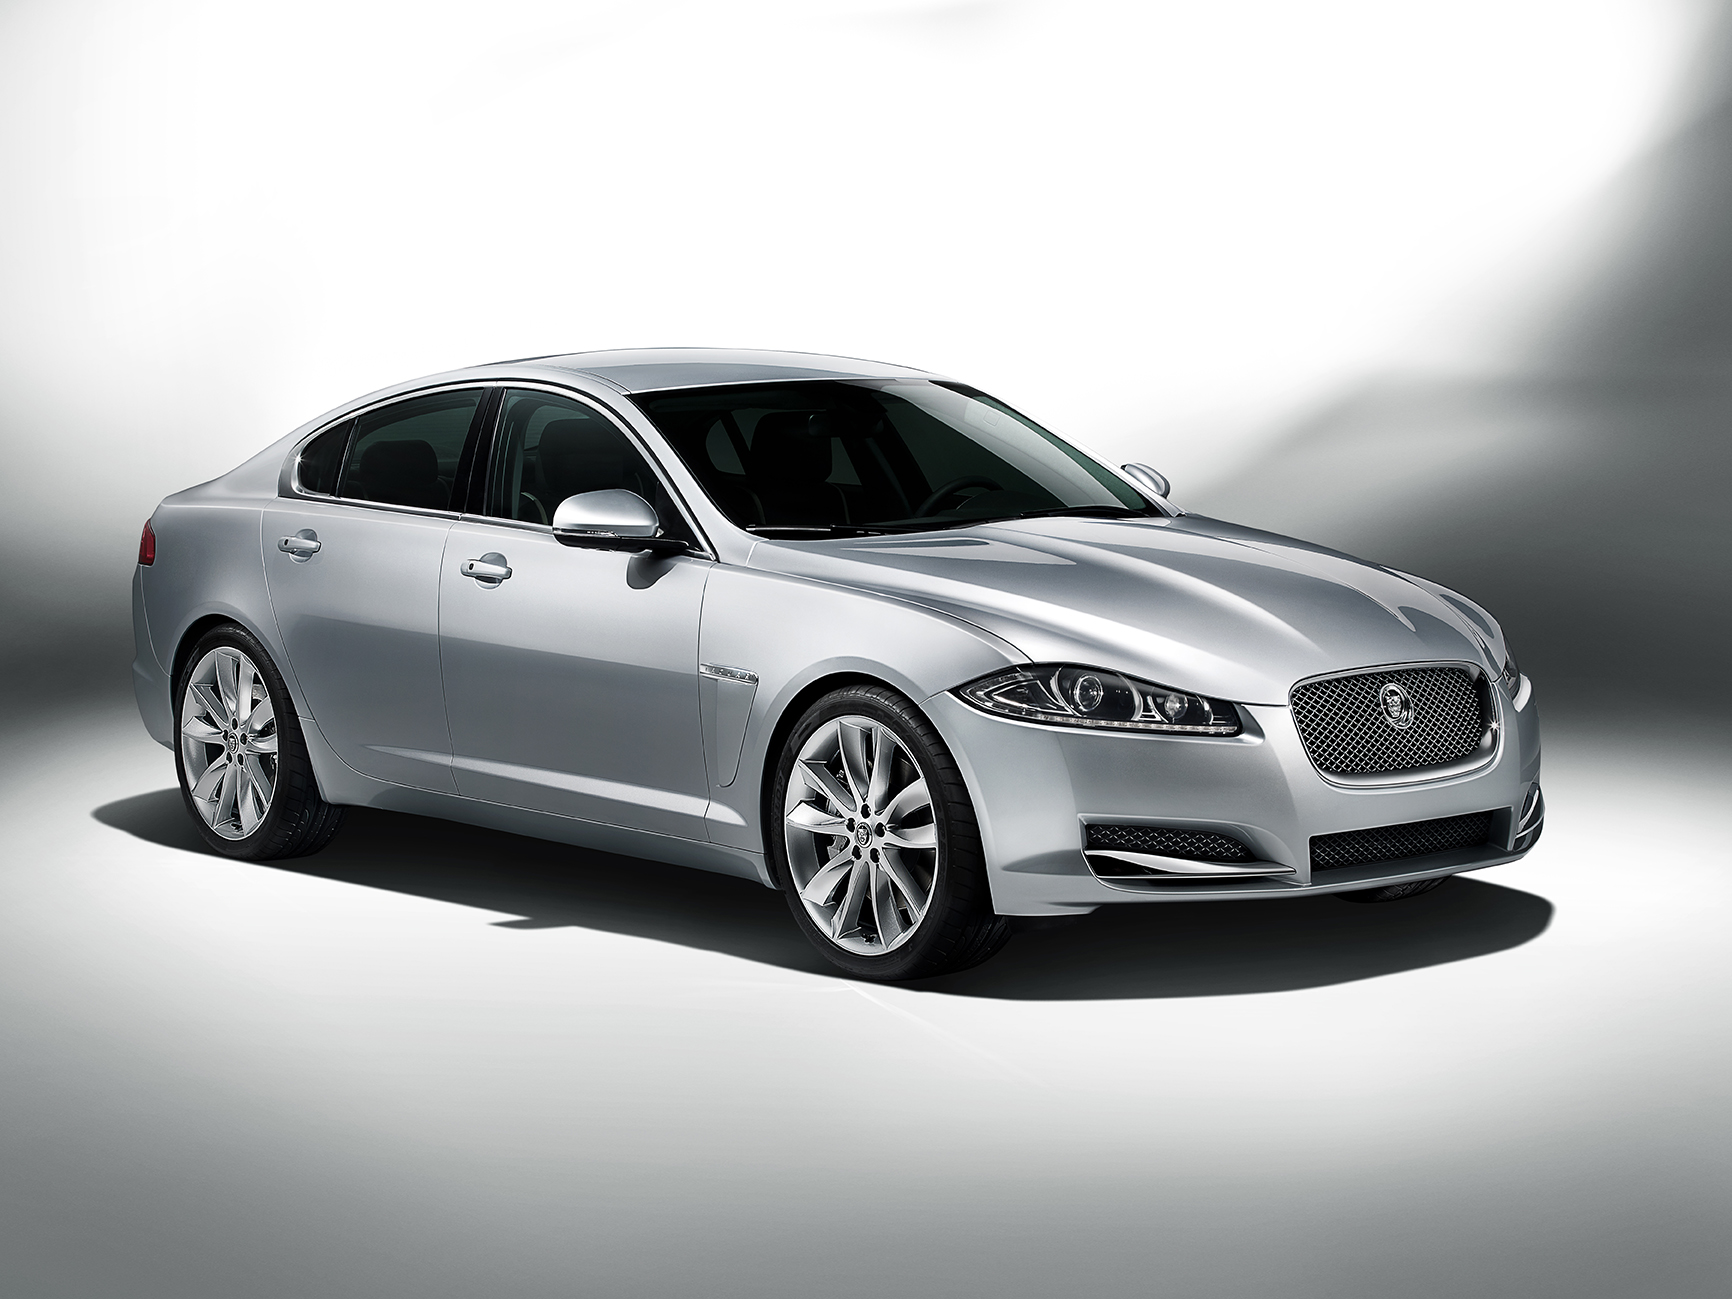 Jaguar Has Introduced A New Entry Level Jaguar XF To The Market. The XF 2.0  Petrol Luxury Is Currently The Companyu0027s Most Affordable Model, At  A$68,900, ...